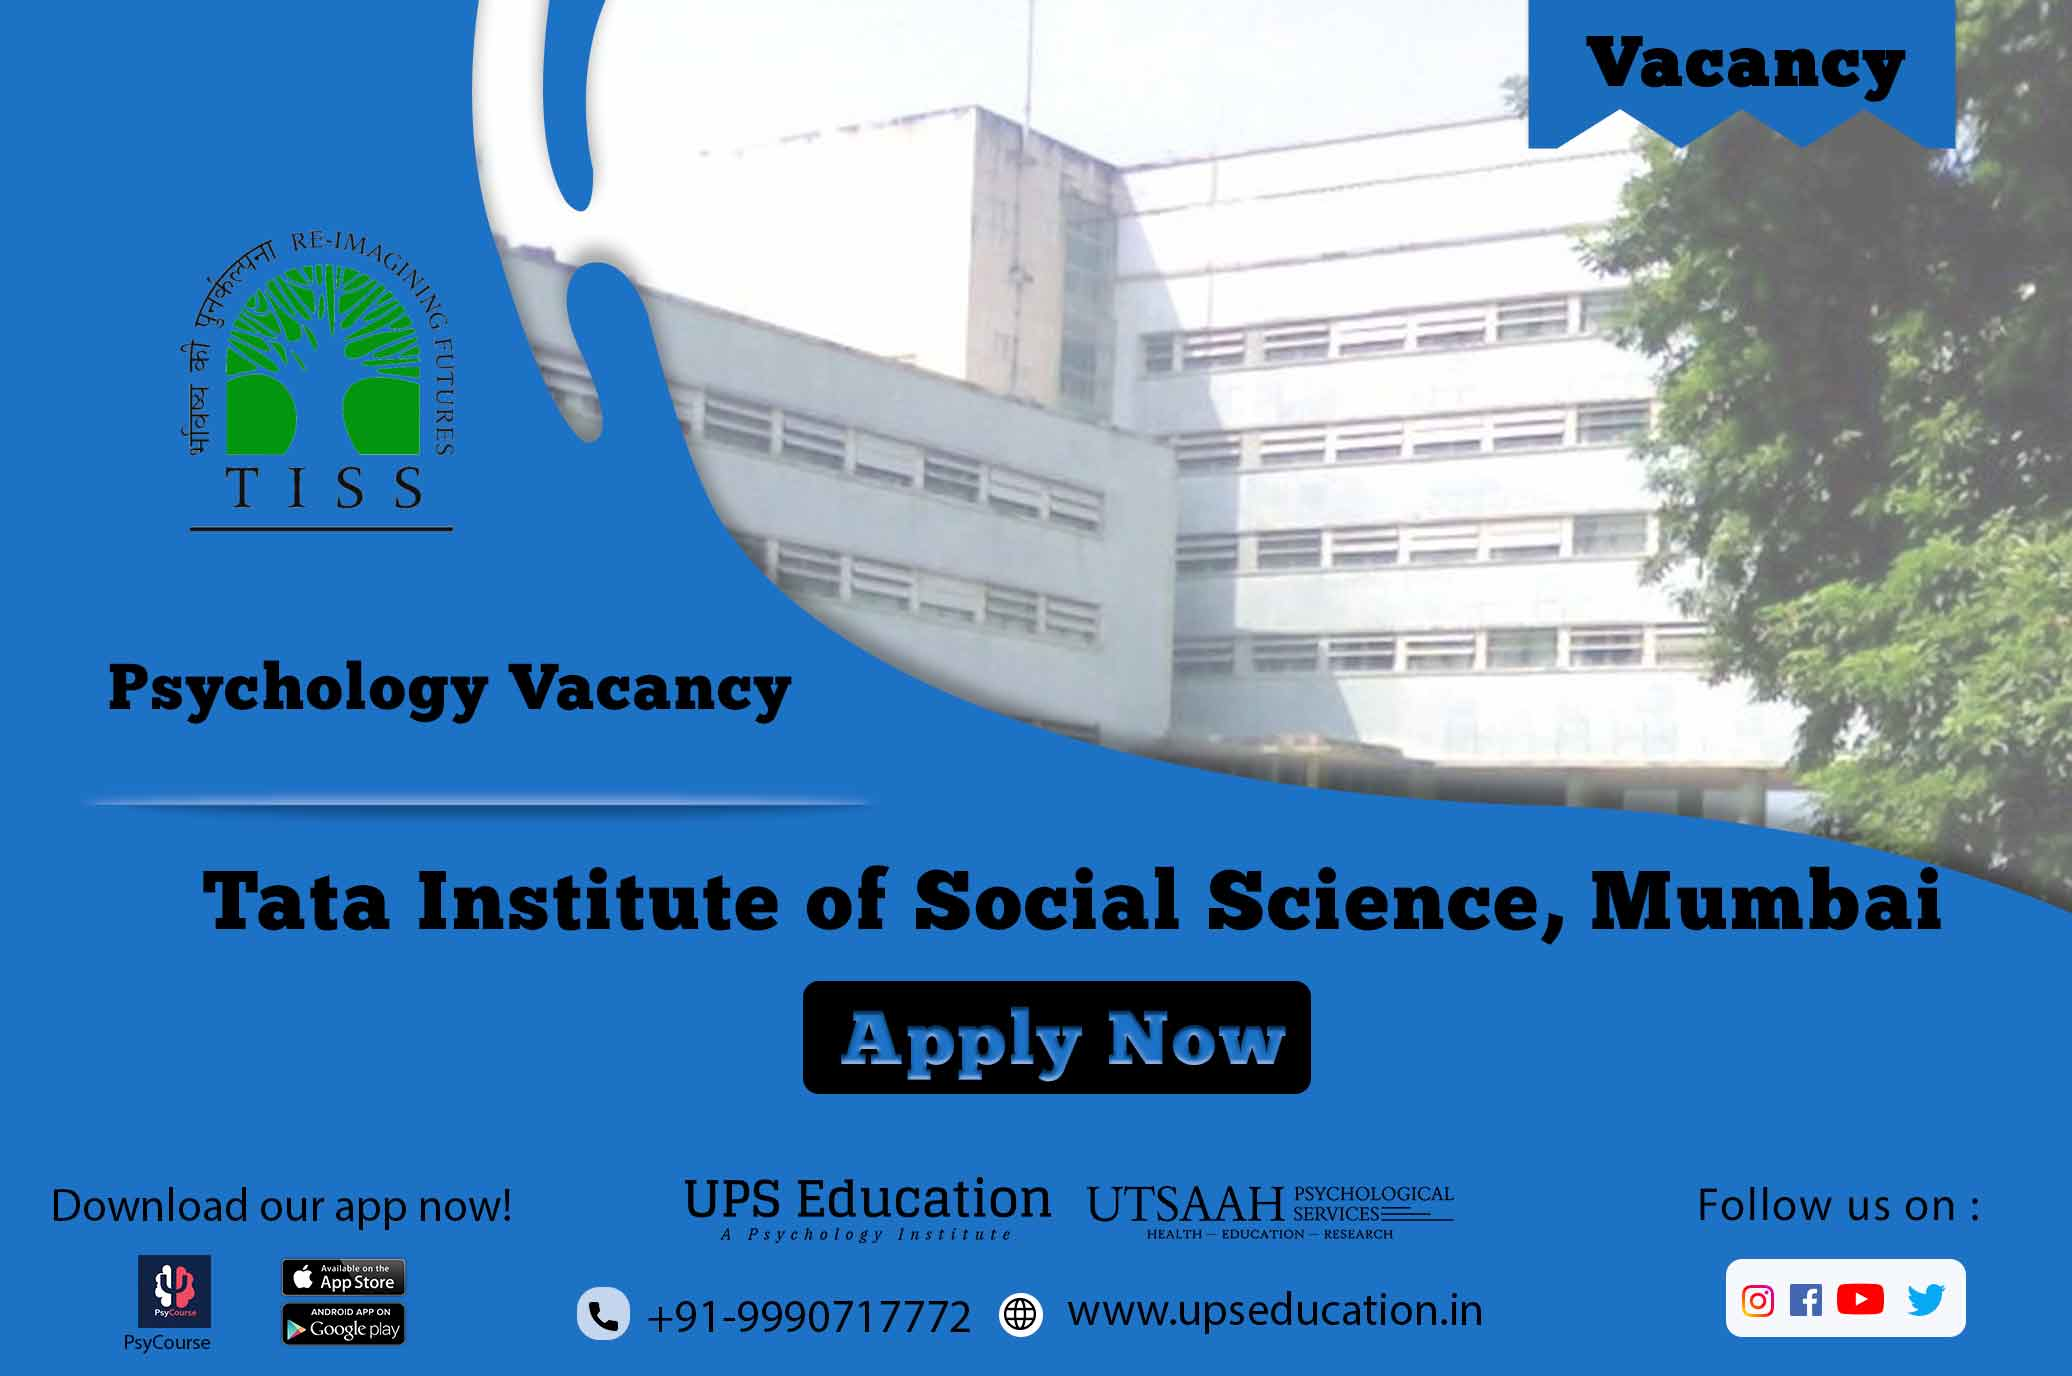 Psychology vacancy in TISS